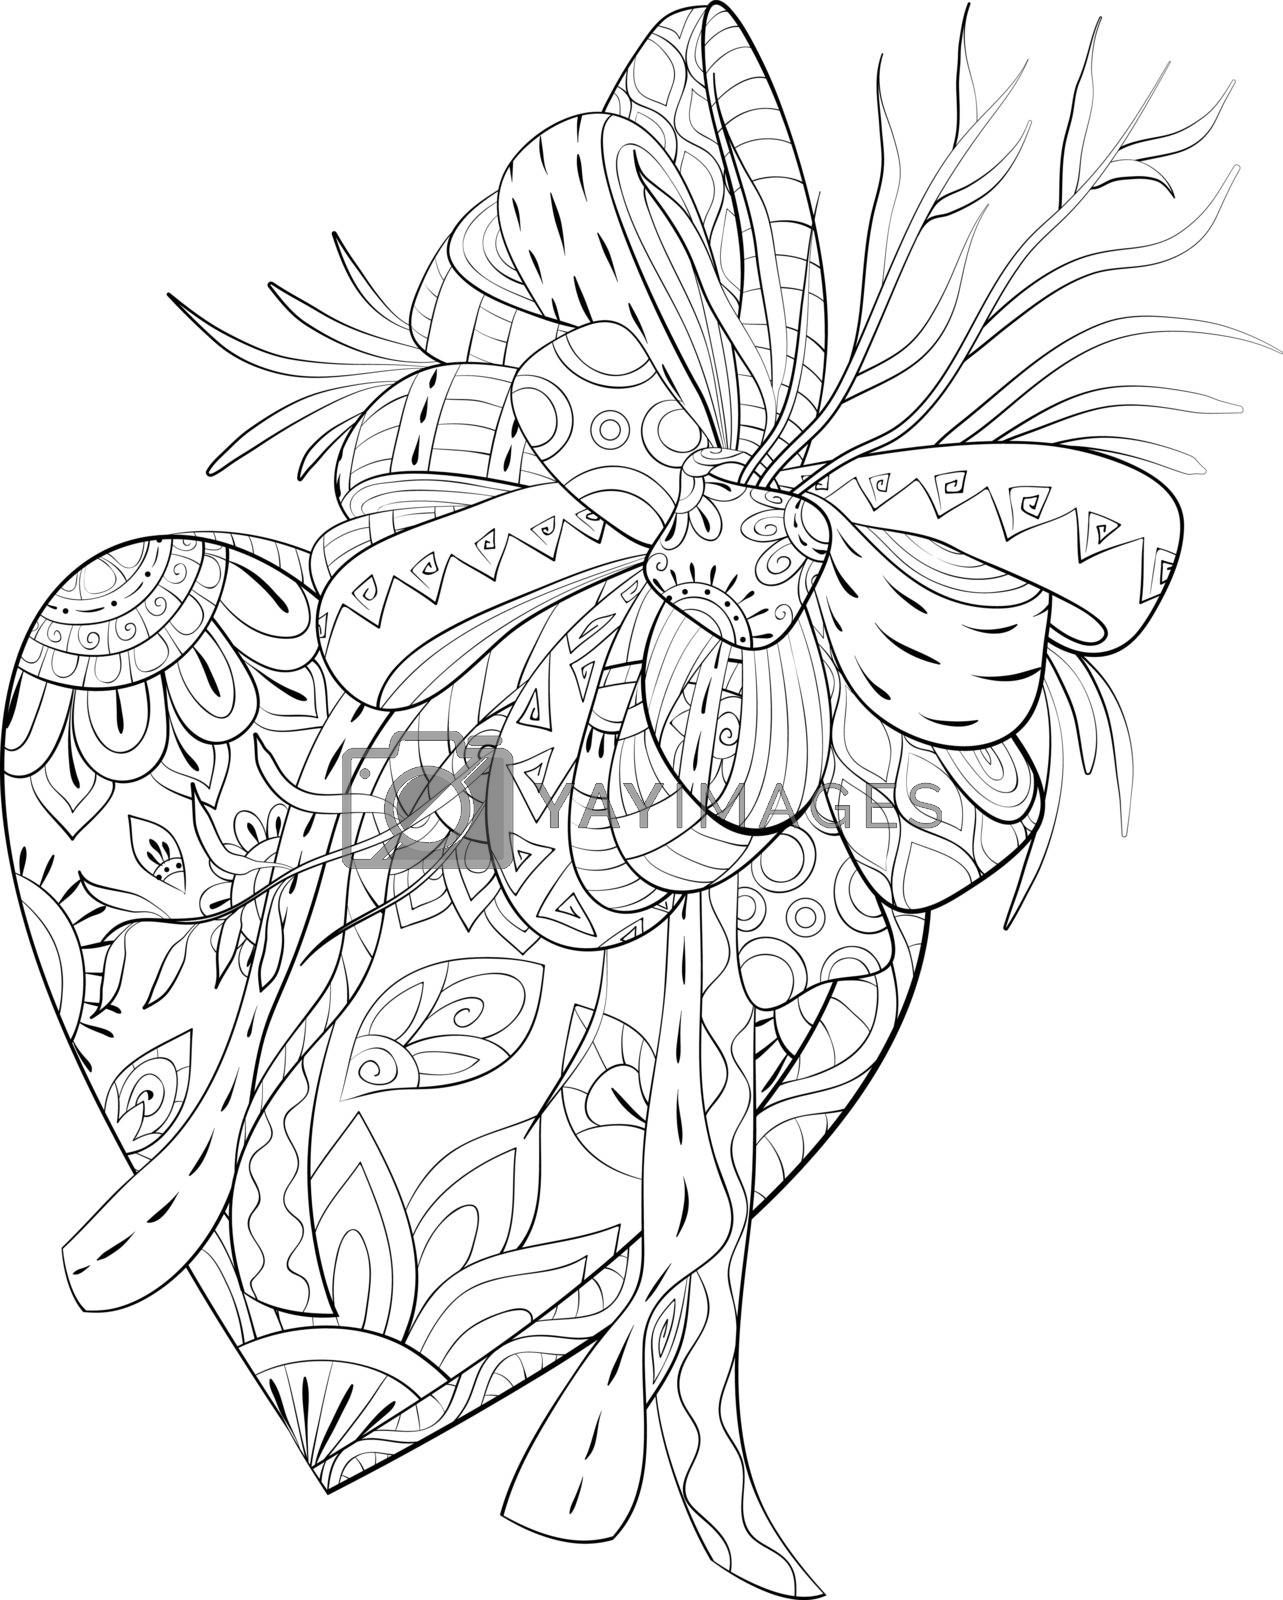 A cute heart with bow and leaves with ornaments image for relaxing.A coloring book,page for adults.Zen art style illustration for print.Poster design.